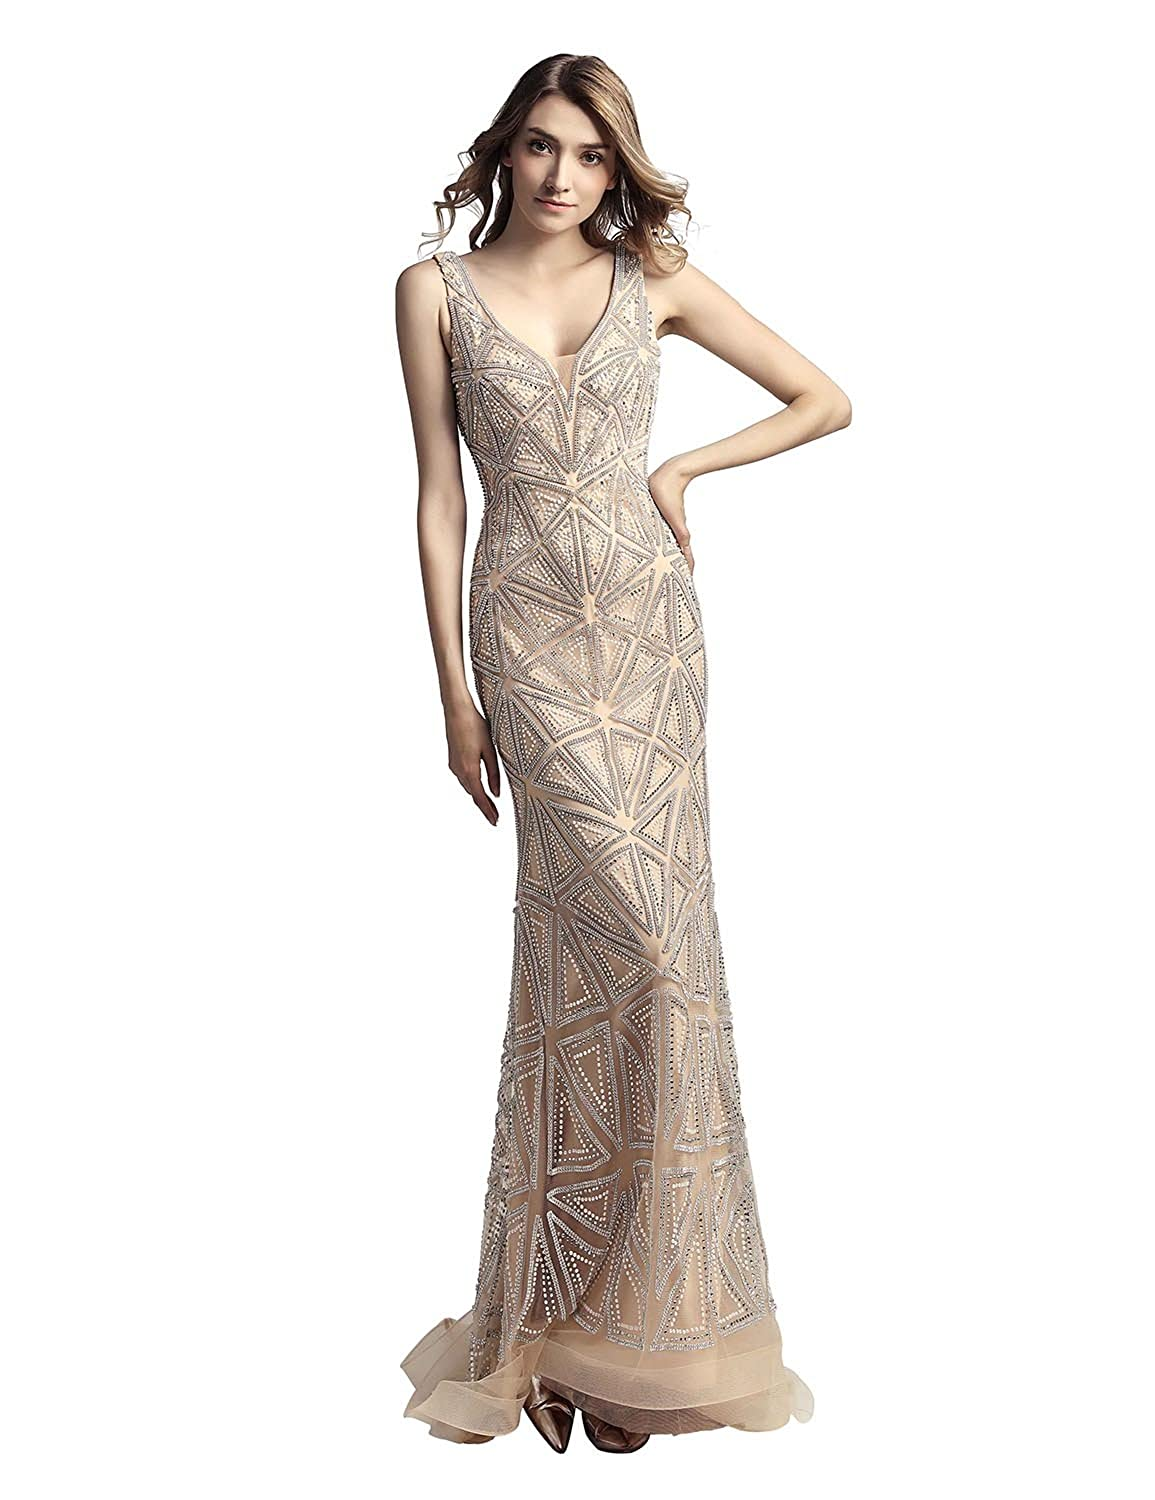 423champagne Sarahbridal Women's Tulle HiLow Beading Prom Dresses Evening Homecoming Cocktail Gowns